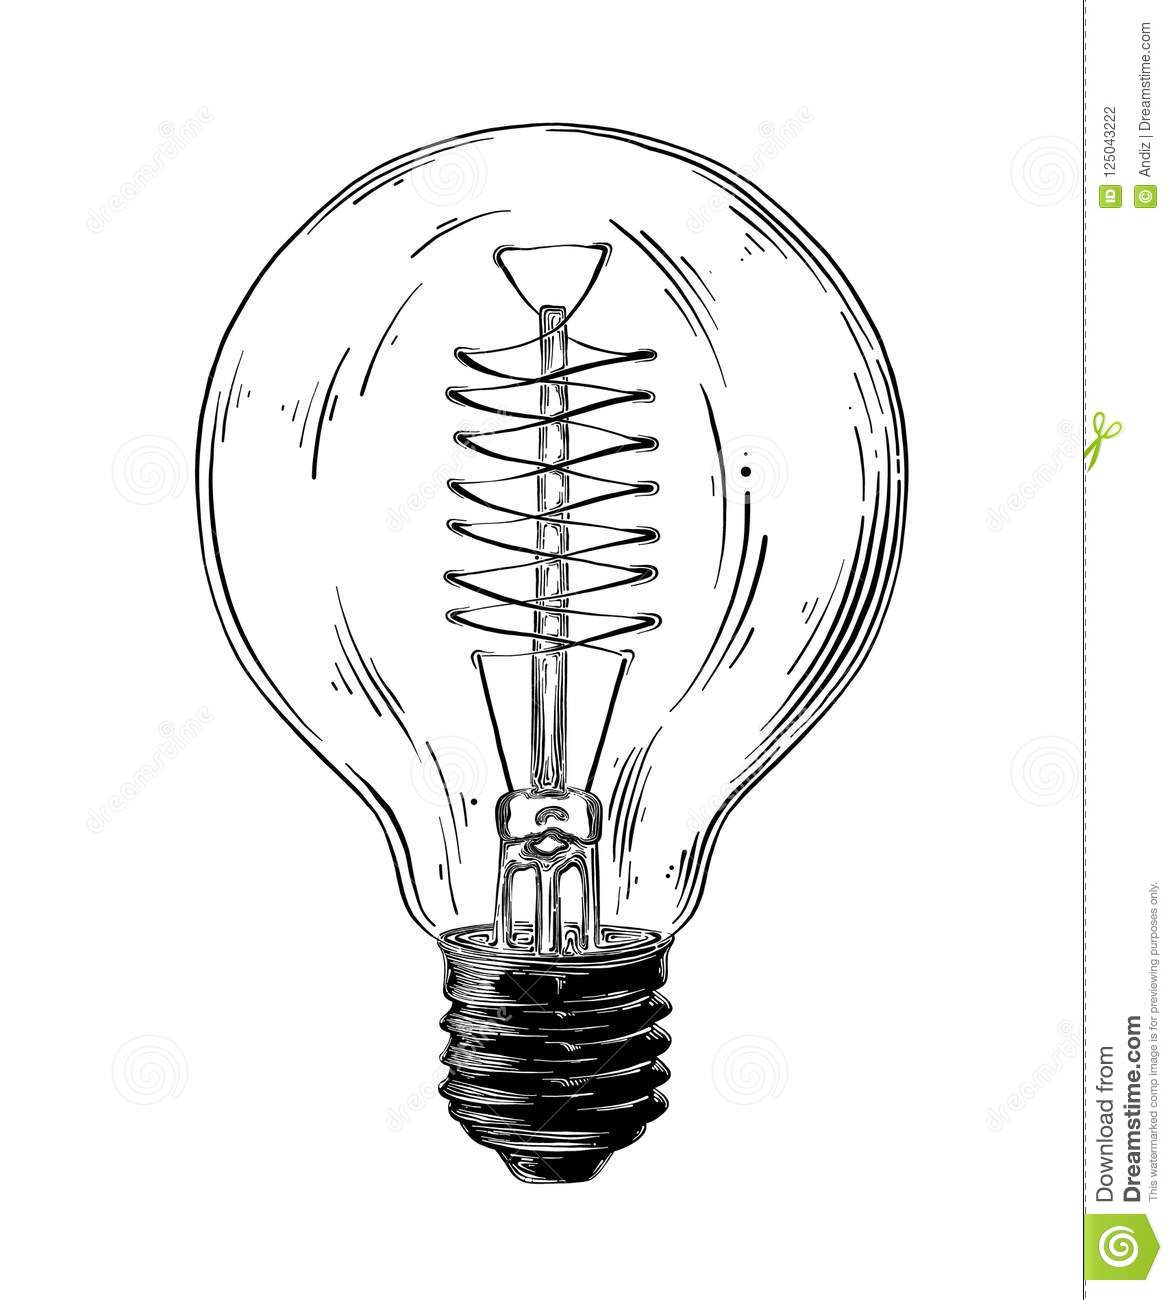 Hand Drawn Sketch Of Lightbulb In Black Isolated On White Background